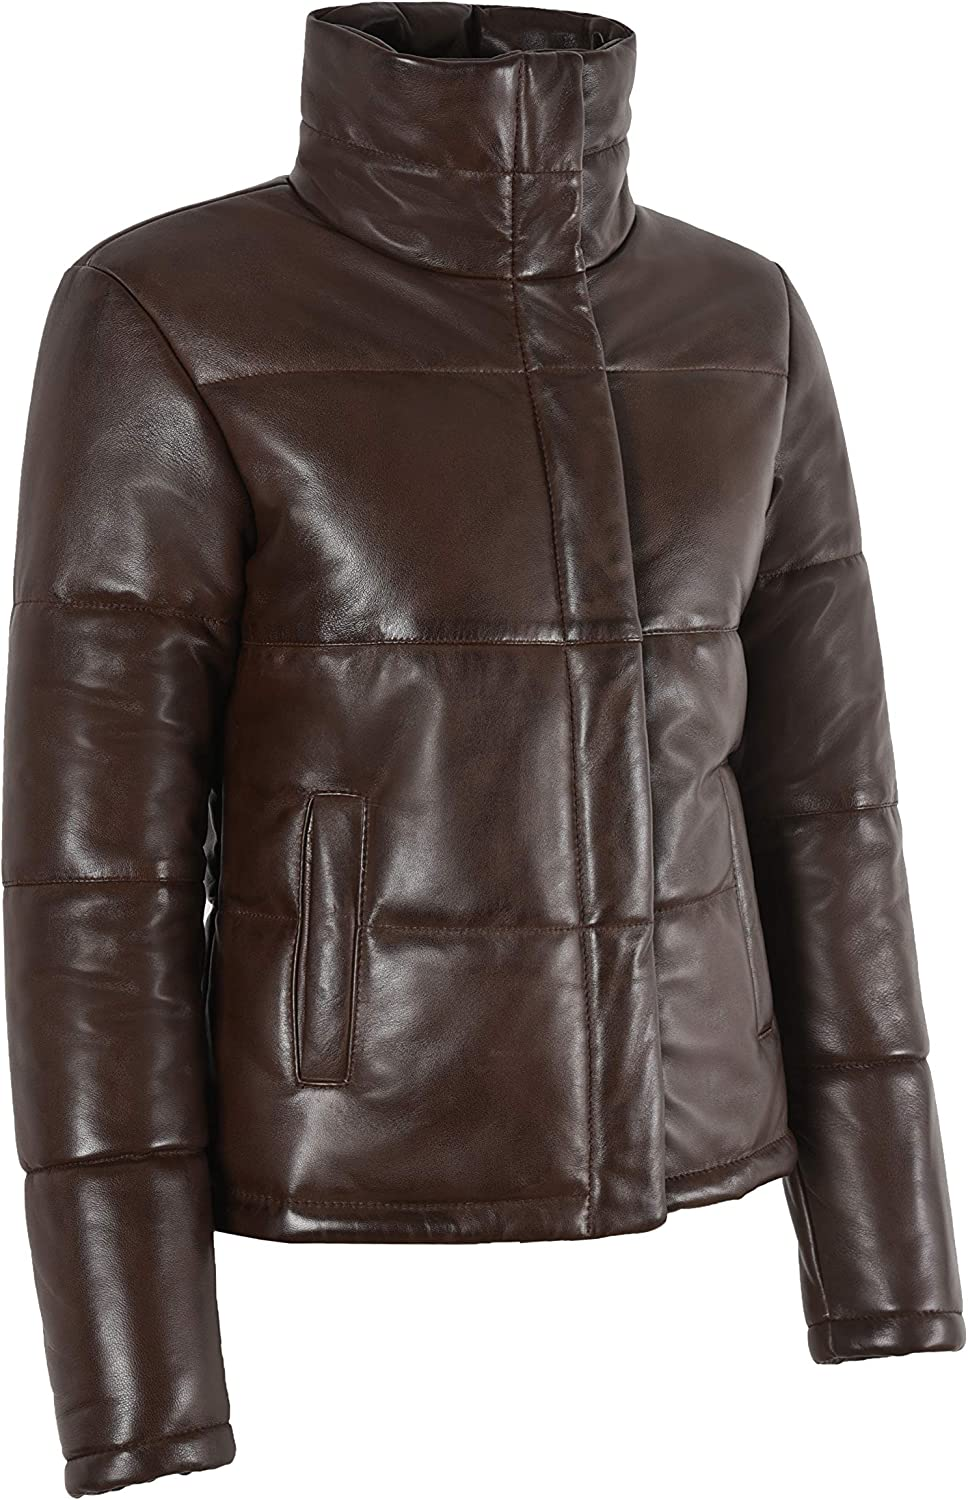 LADIES PUFFER JACKET Real Lambskin Leather Brown Quilted Padded Winters Jackets 5454